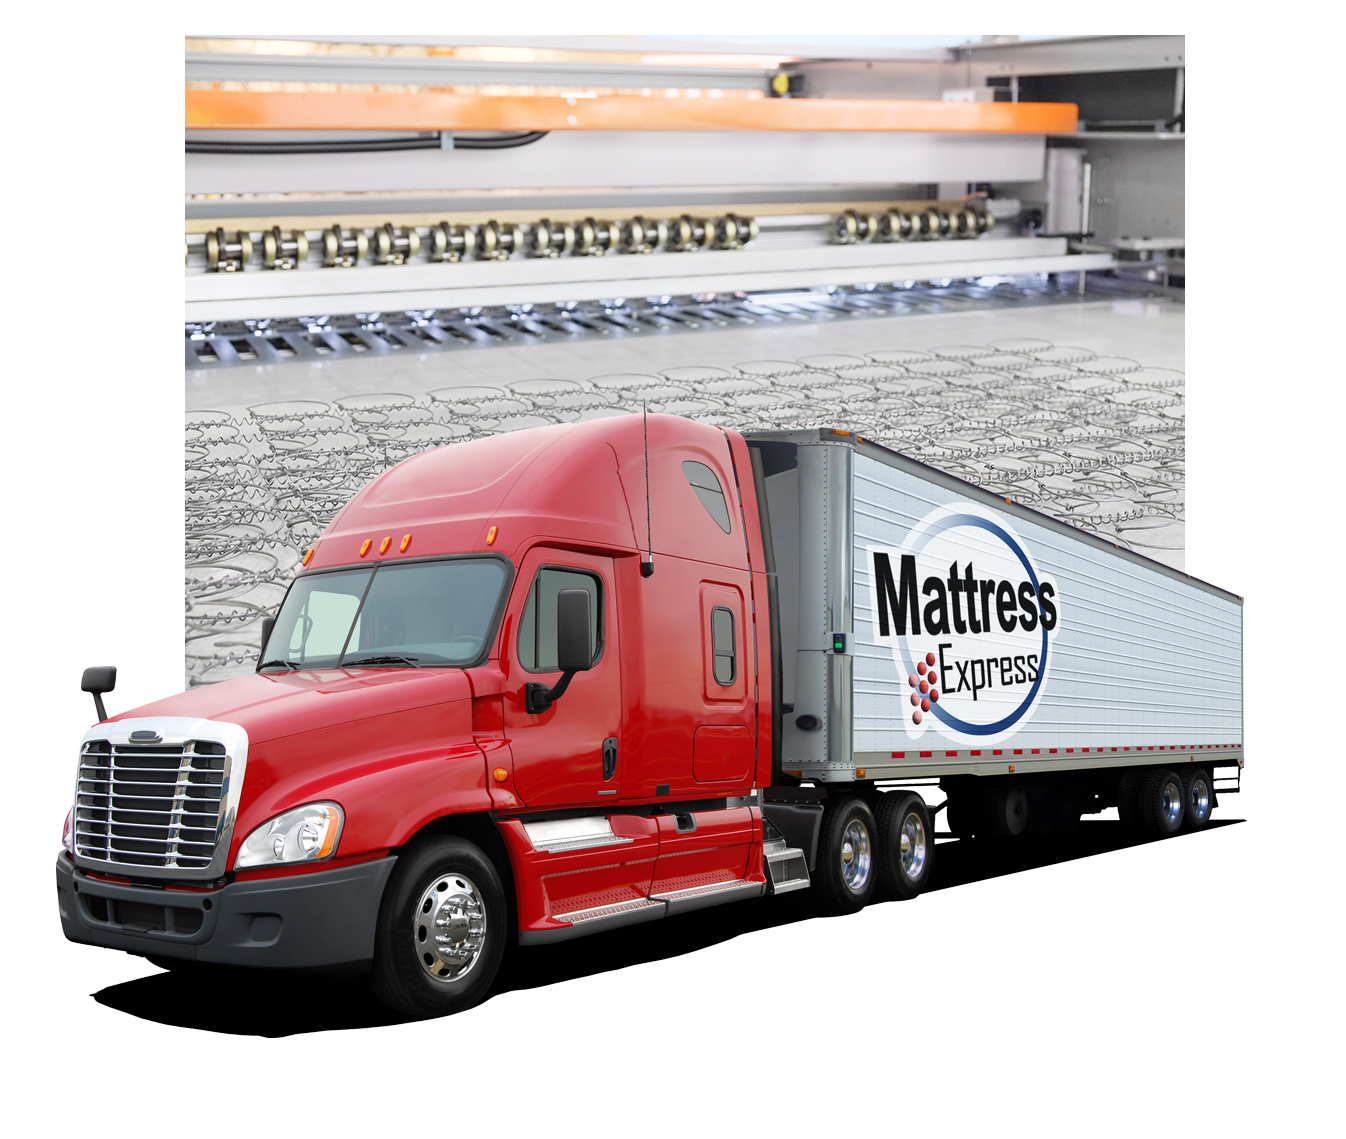 Factory Direct mattresses with our truck load in front